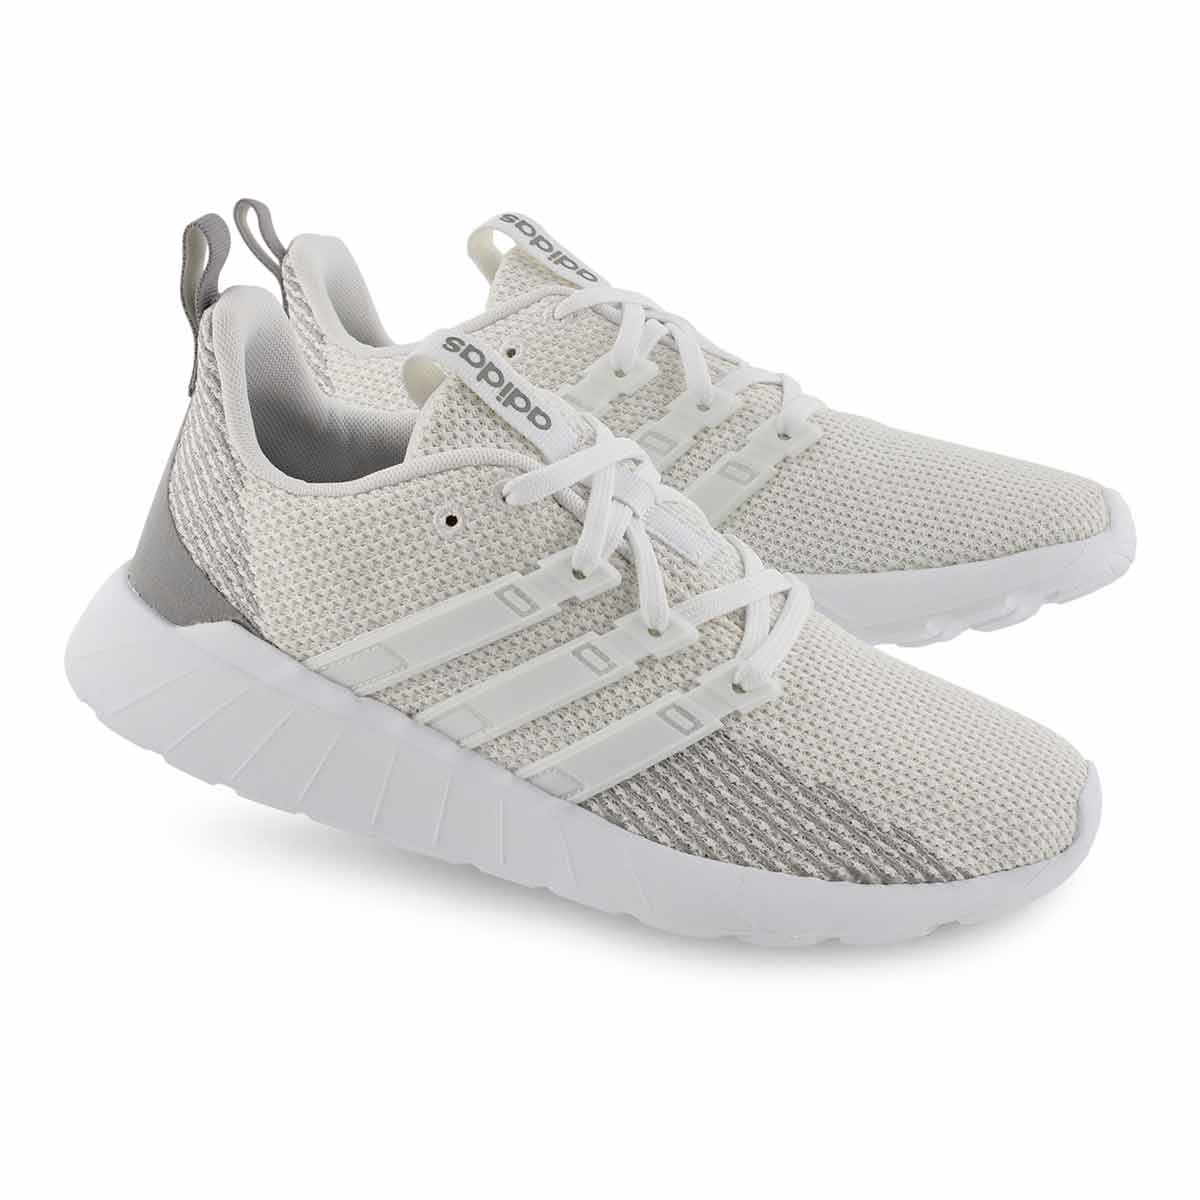 Lds Questar Flow wht/wht running shoe